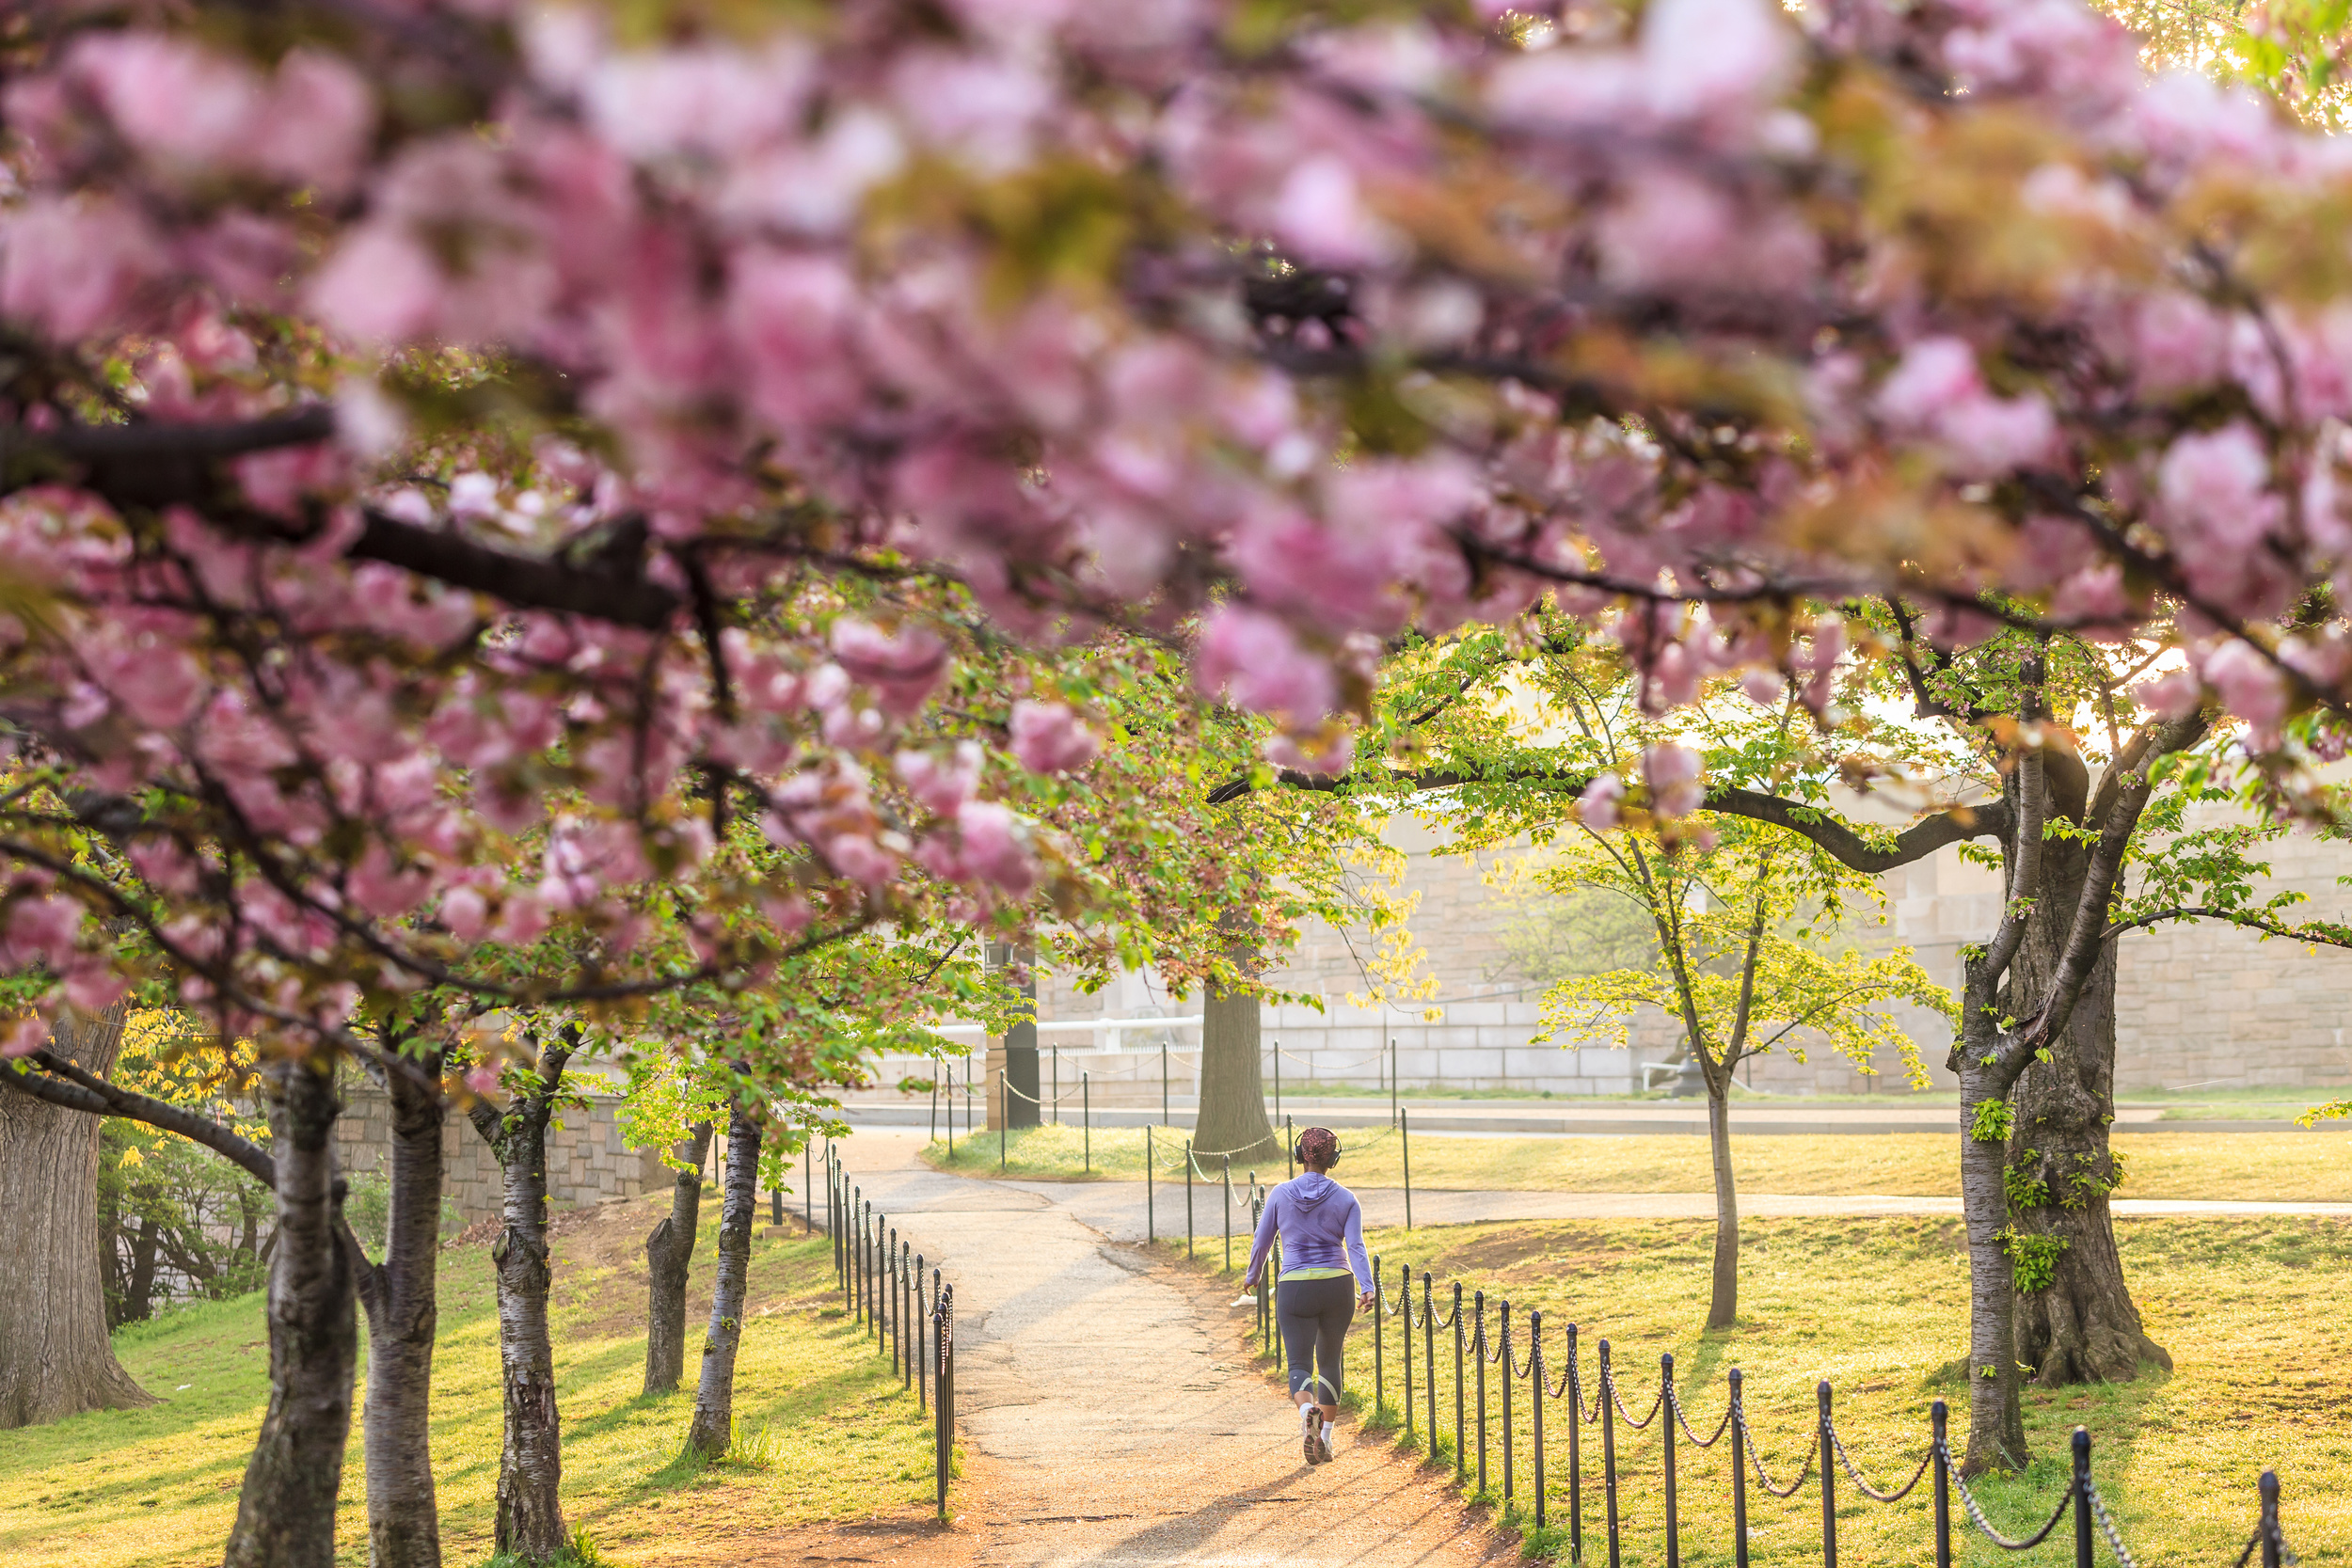 What's more picturesque than a jog amid Washington, DC's cherry blossoms in spring?